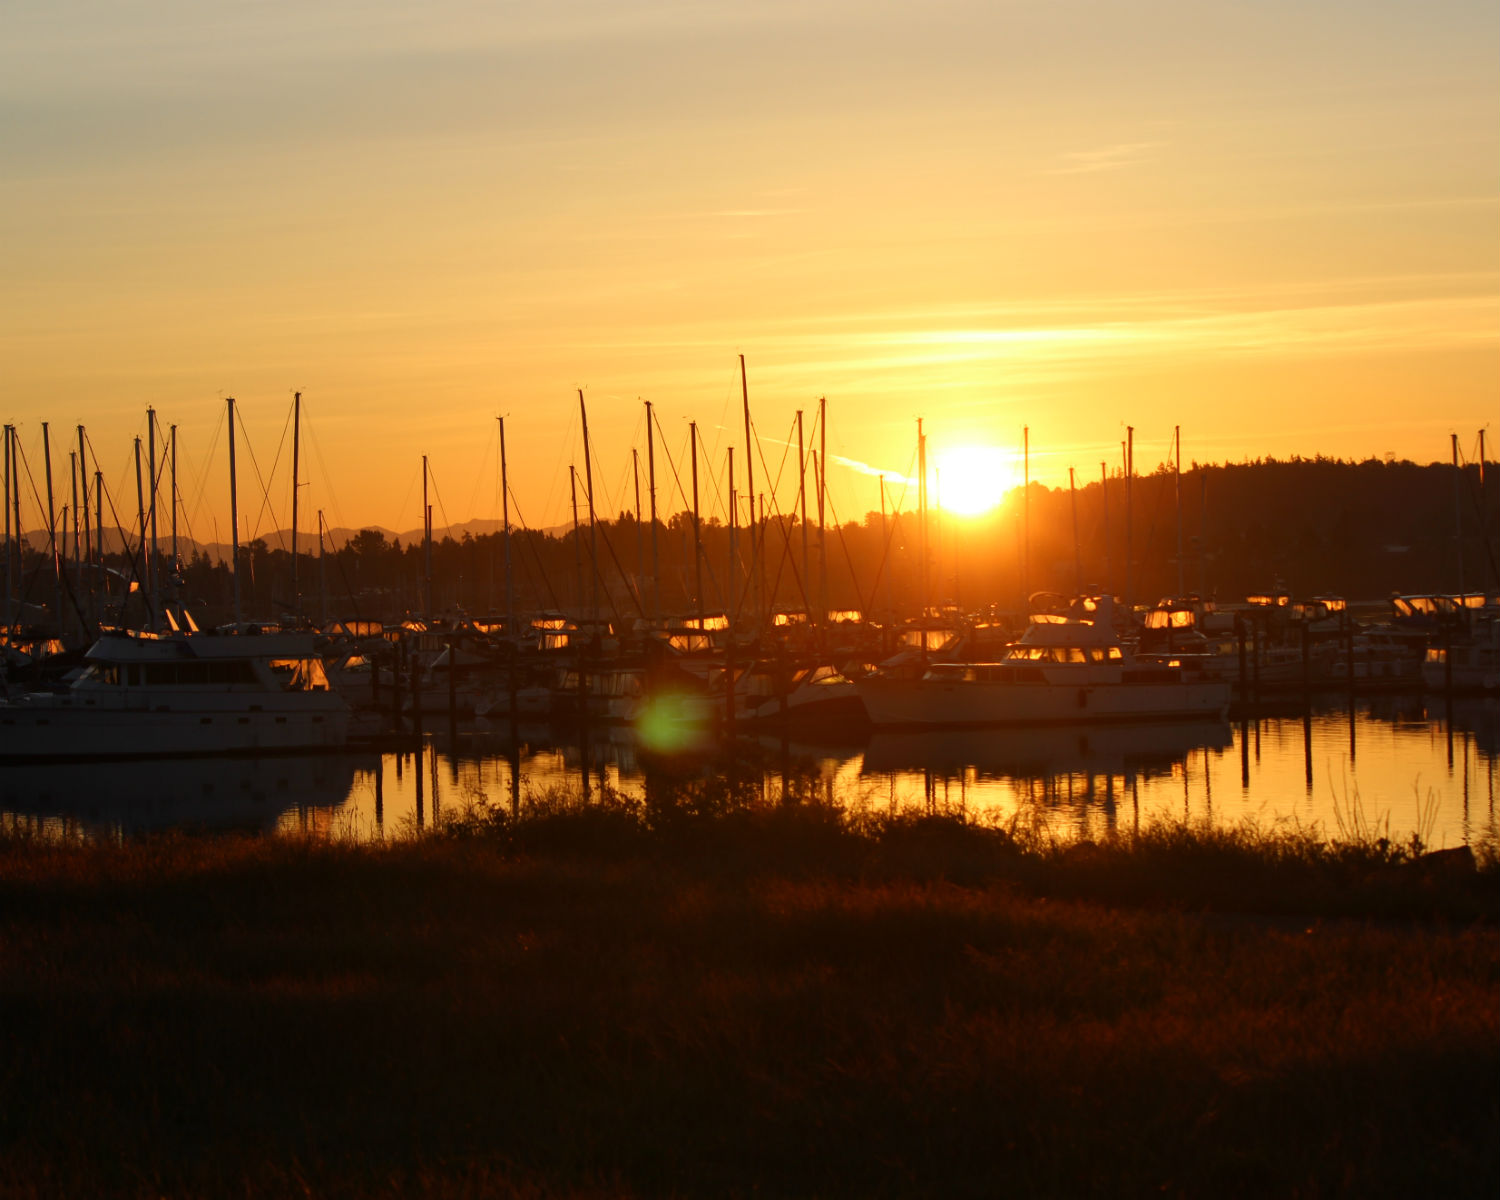 Sunset in harbor with sailboats